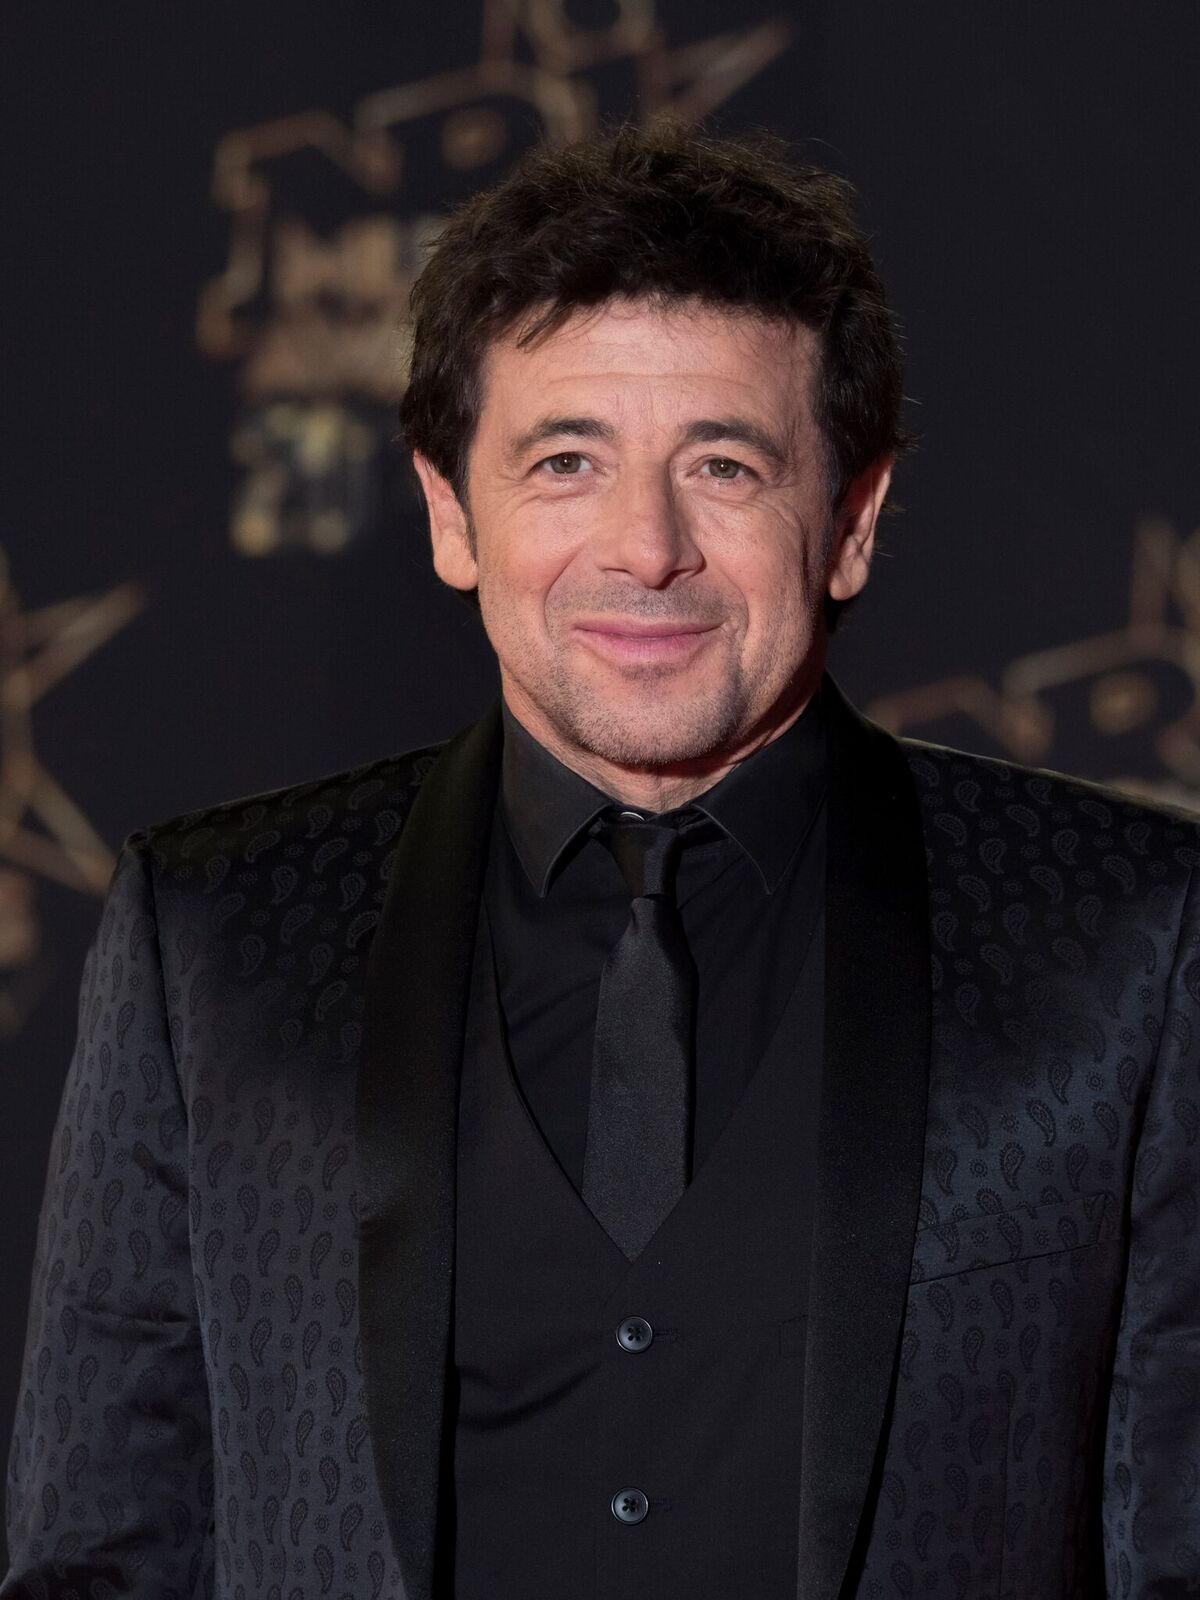 Patrick Bruel participe à la 20ème édition des NRJ Music Awards au Palais des Festivals. | Photo : GettyImage